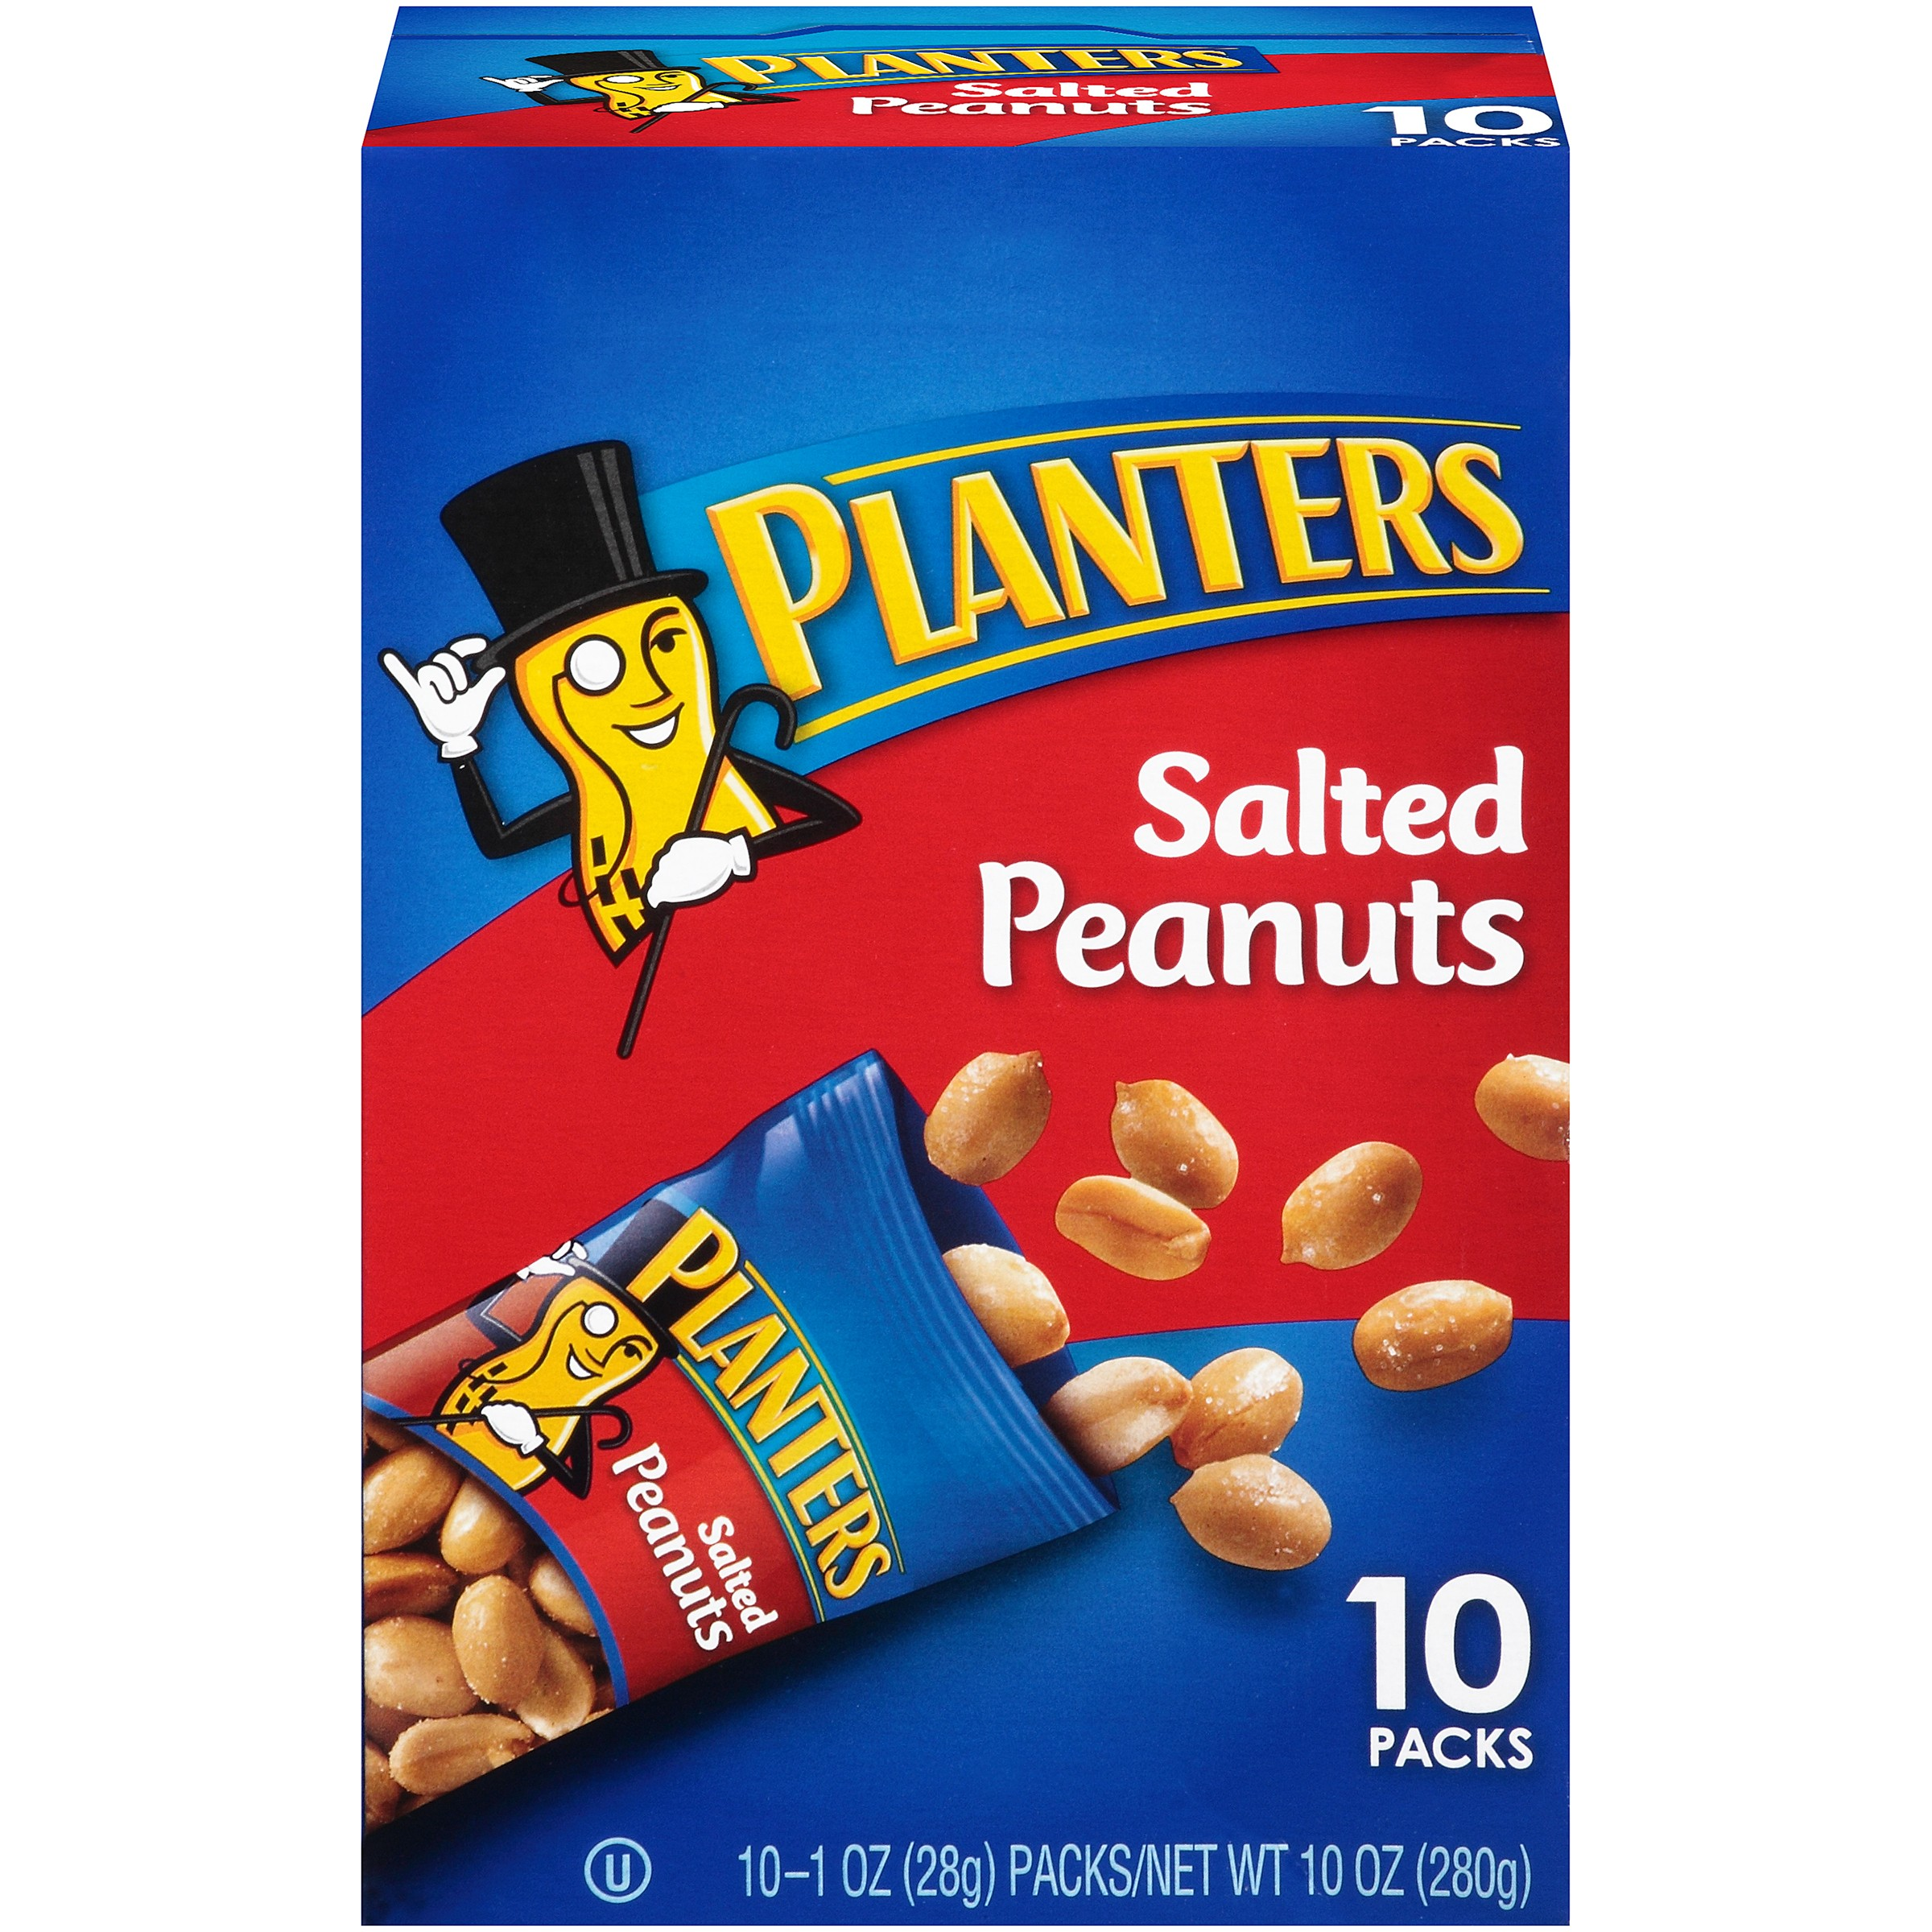 Planters Salted Peanuts 10-1 oz. Bags